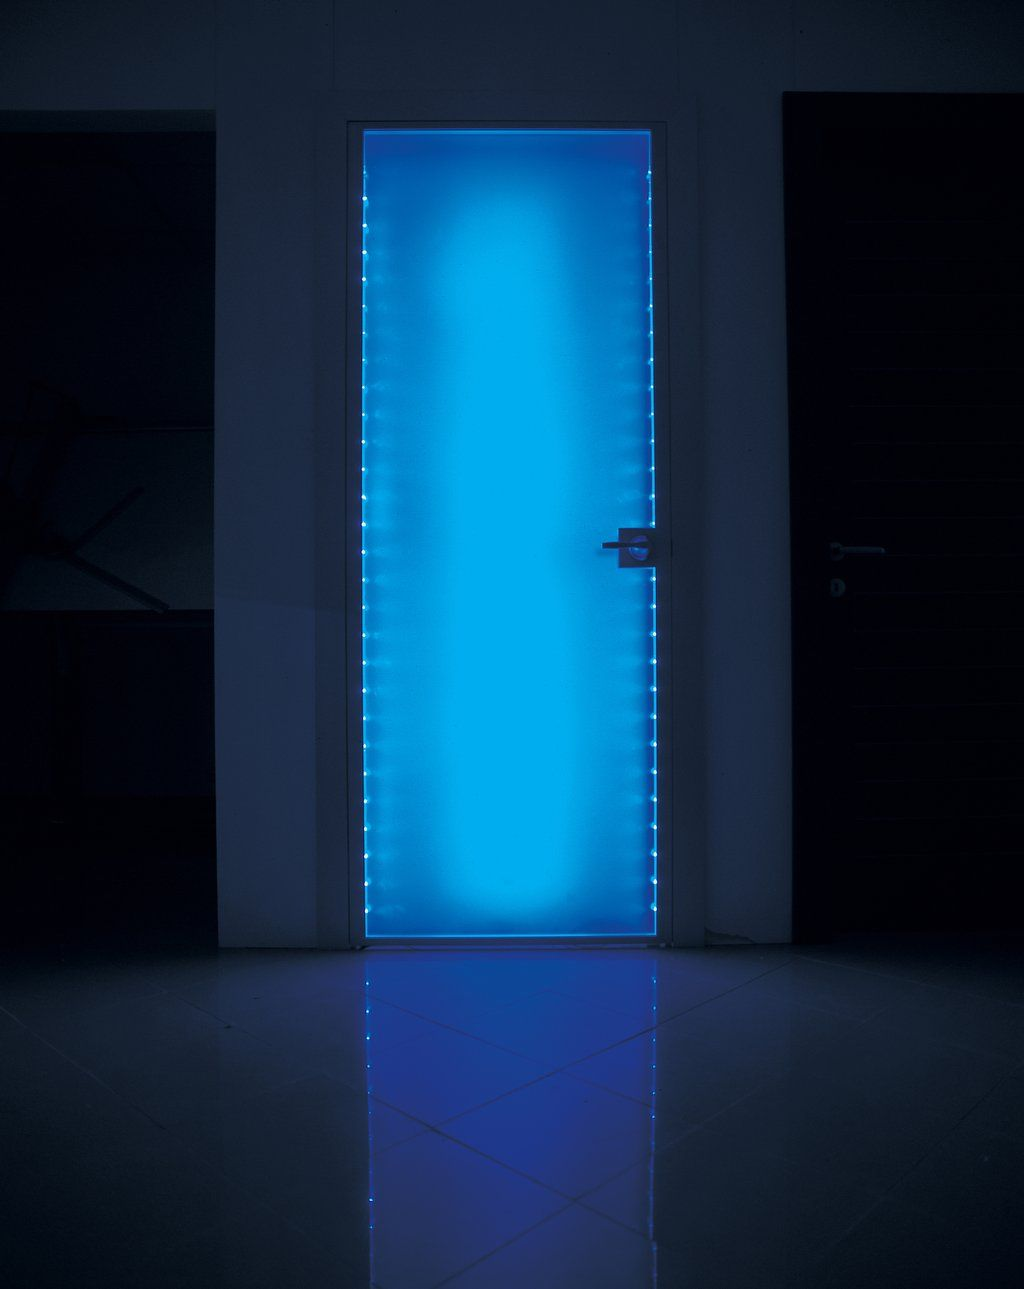 Plexi Glass Doors : Edge lit led plexiglass door edison project pinterest